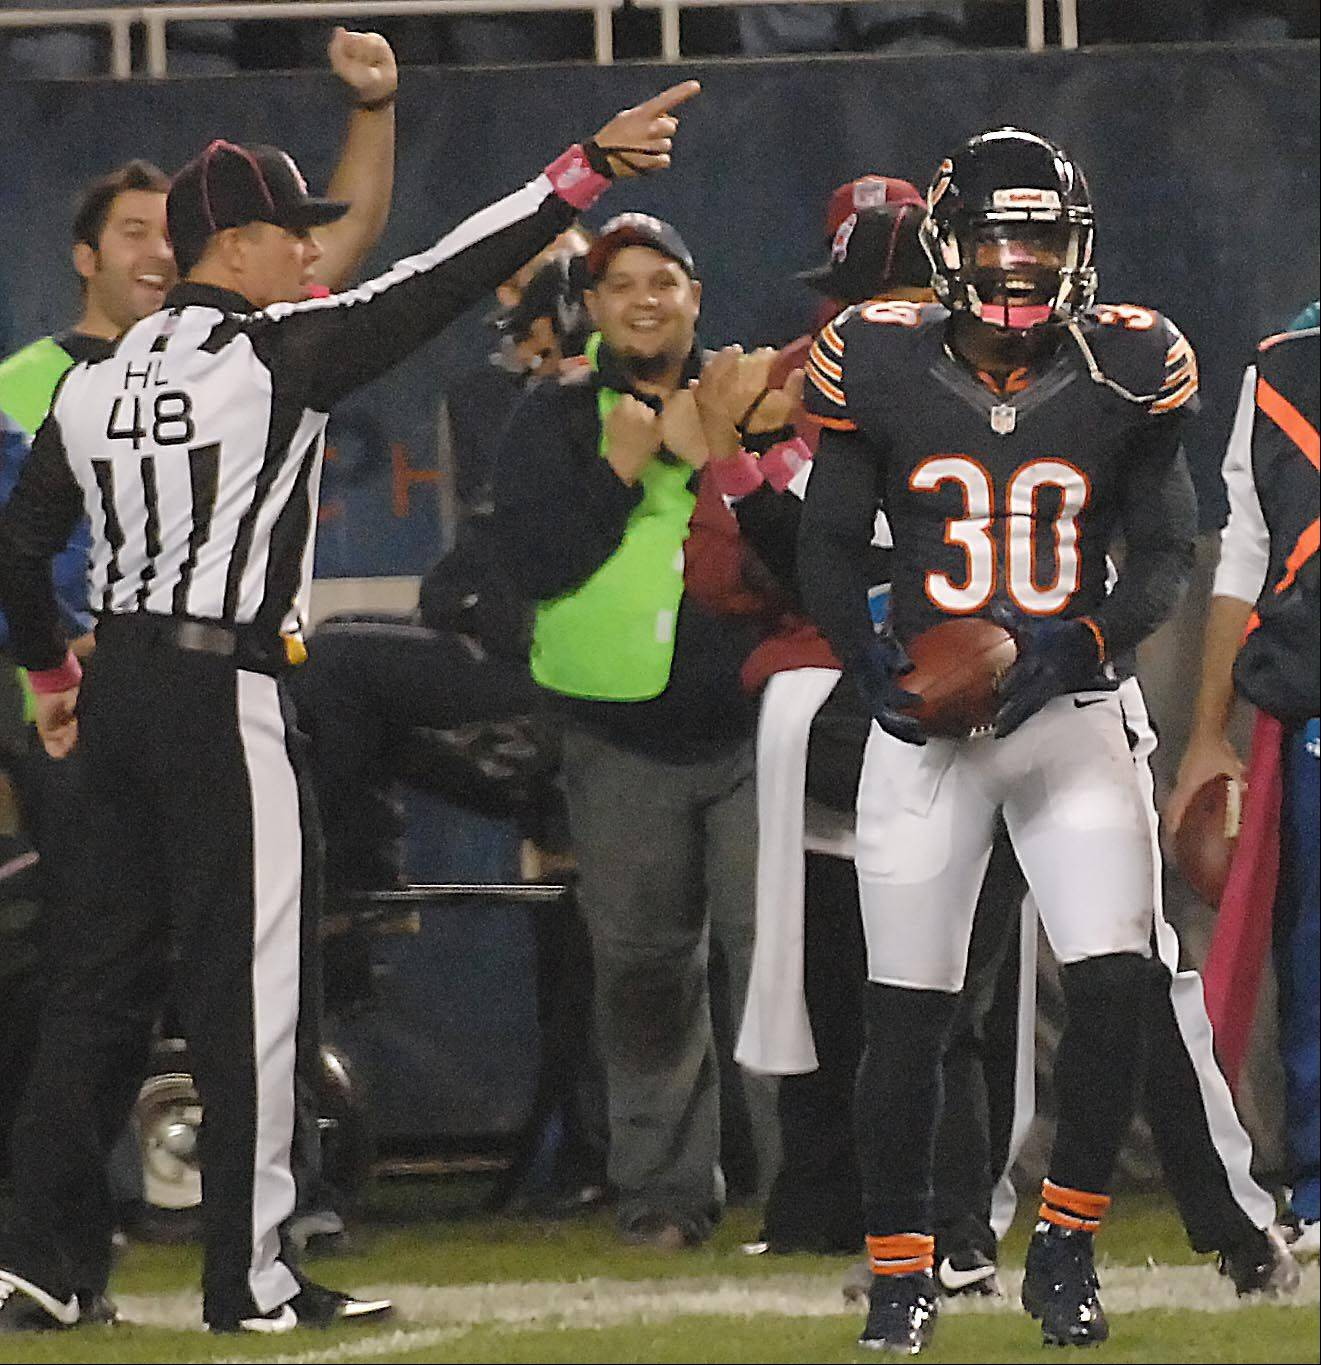 Chicago Bears cornerback D.J. Moore laughs as the referee signals interception late in the game at Soldier Field Monday night.